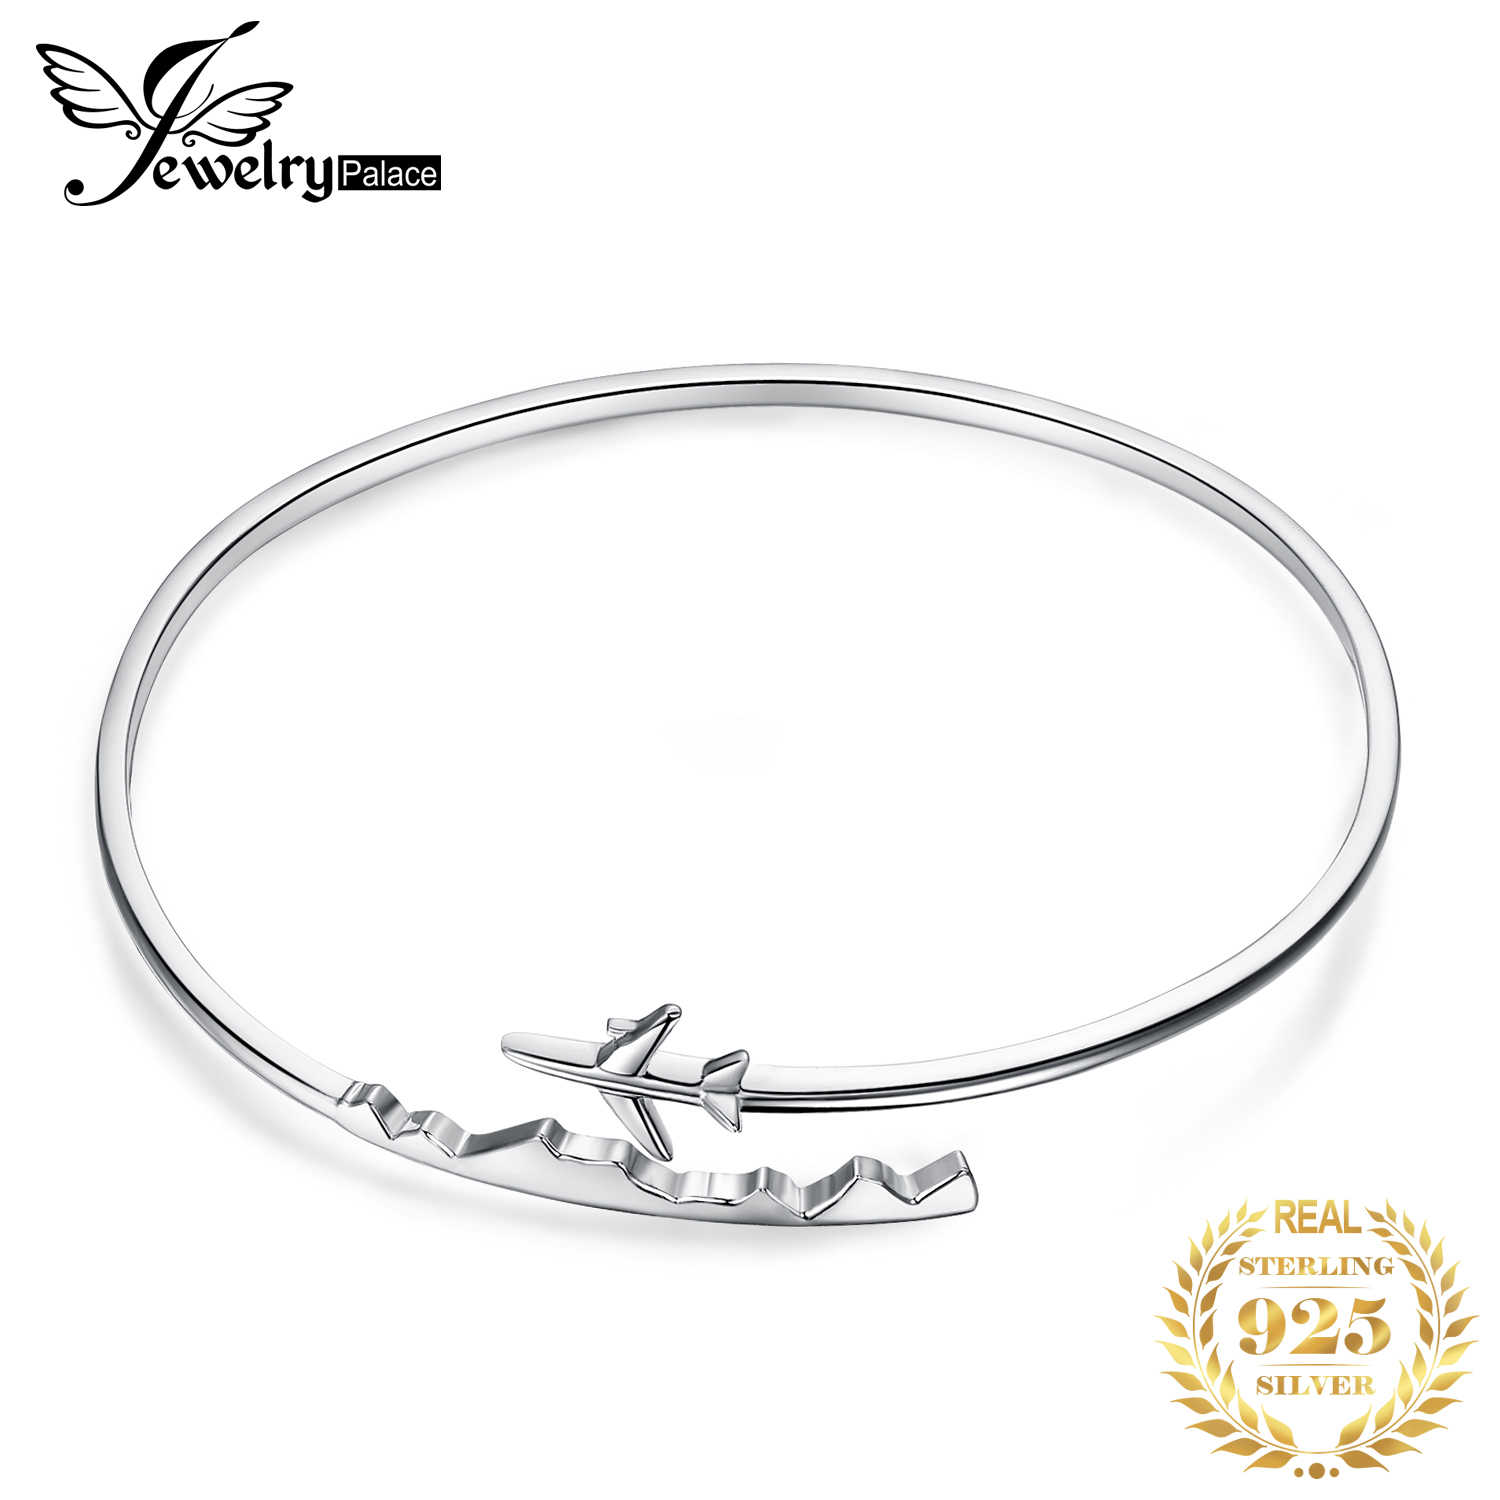 JewelryPalace 925 Sterling Silver Bracelets Airplane Adjustable Open Bangle Bracelet Jewelry for Women